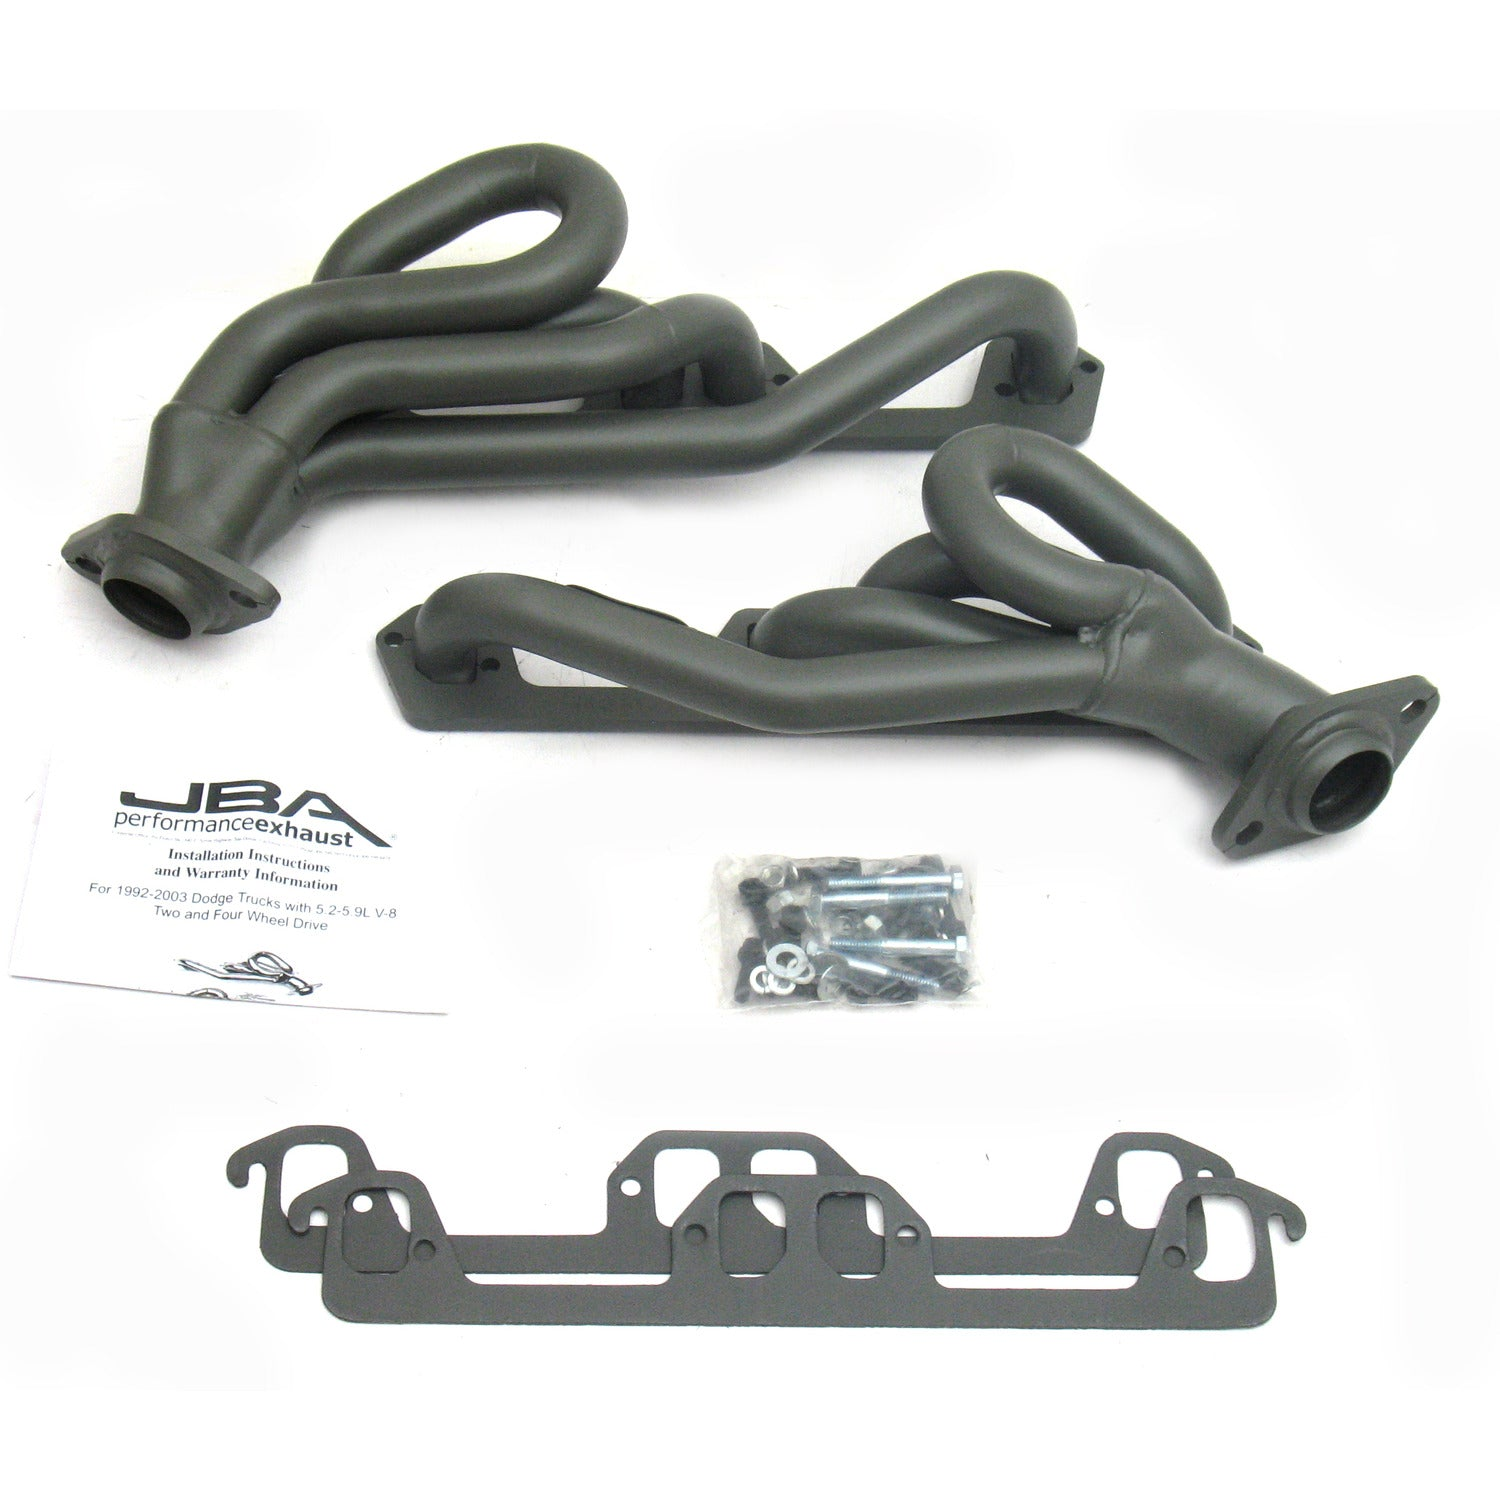 "JBA Performance Exhaust 1945S-1JT 1 1/2"" Header Shorty Stainless Steel 96-02 Ram/Dakota/Durango Titanium Ceramic"